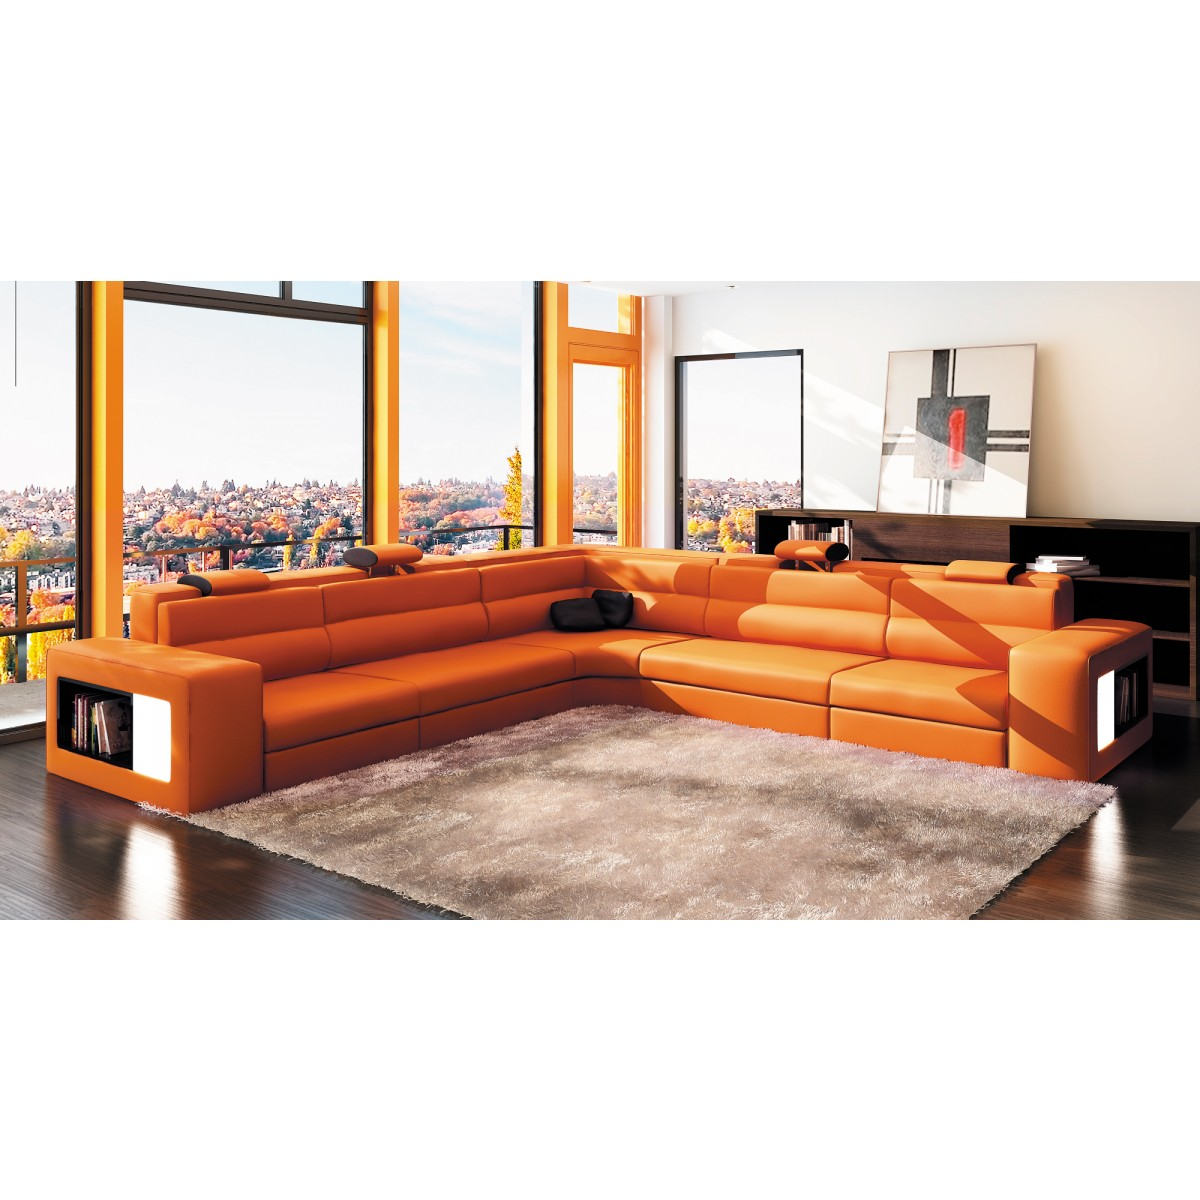 Contemporary Luxury Furniture Living Room Bedroom La Furniture Store In Usa Luxury Modern